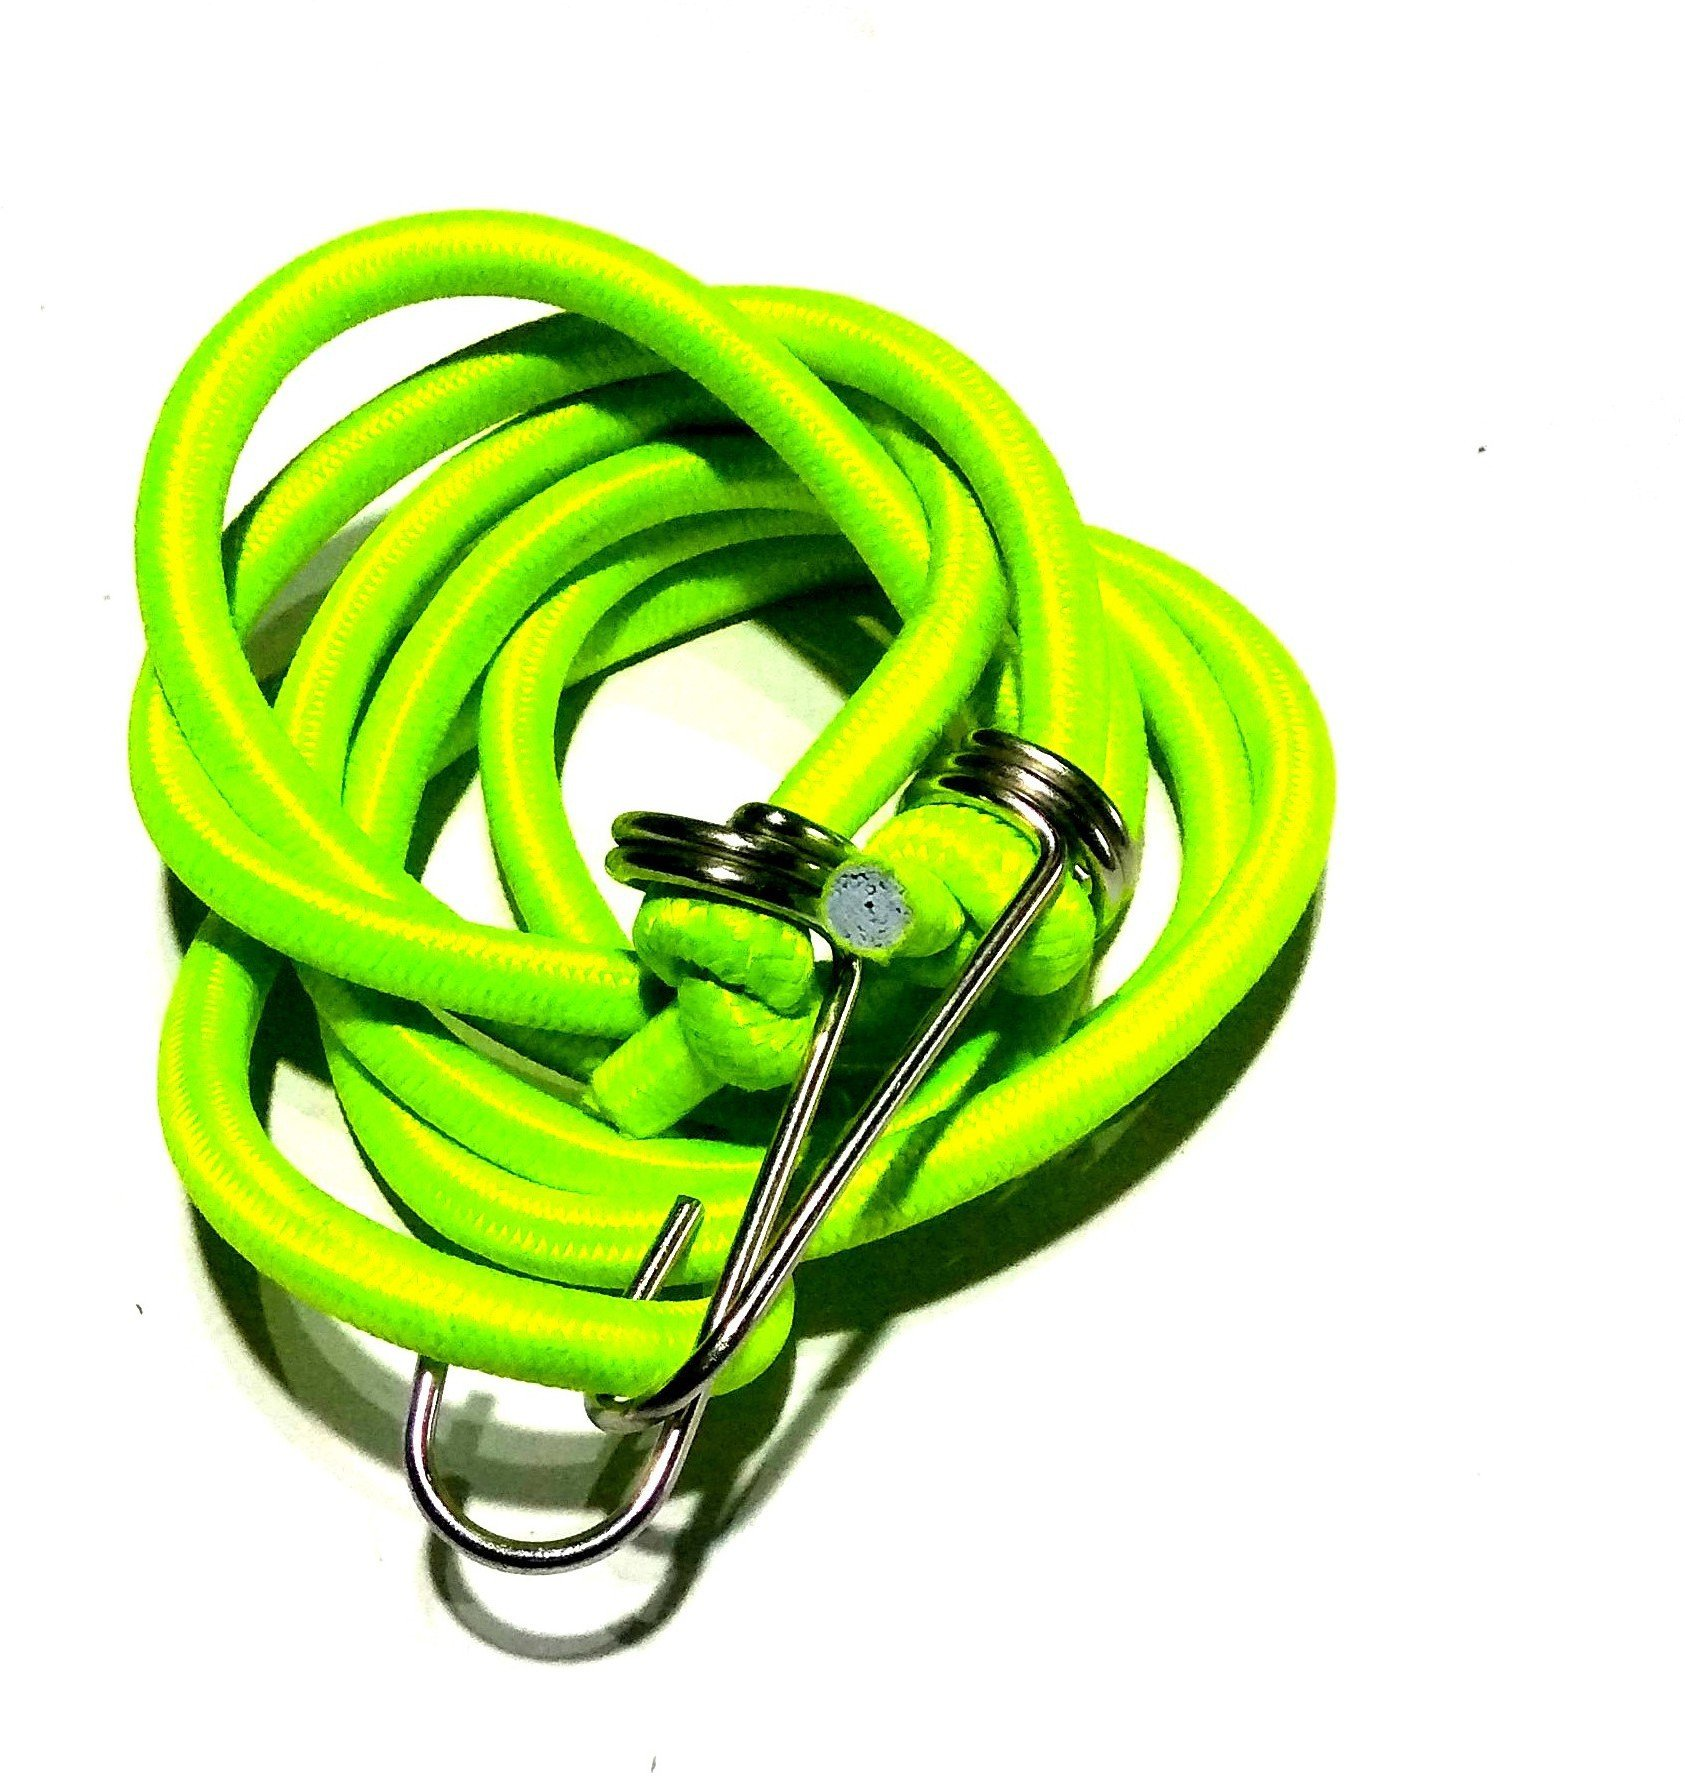 MK Nawani Elastic Luggage Tying Rope with Hooks (Pack of 1) Colour May Vary Yellow(Length: 69 m, Diameter: 0.5 mm)